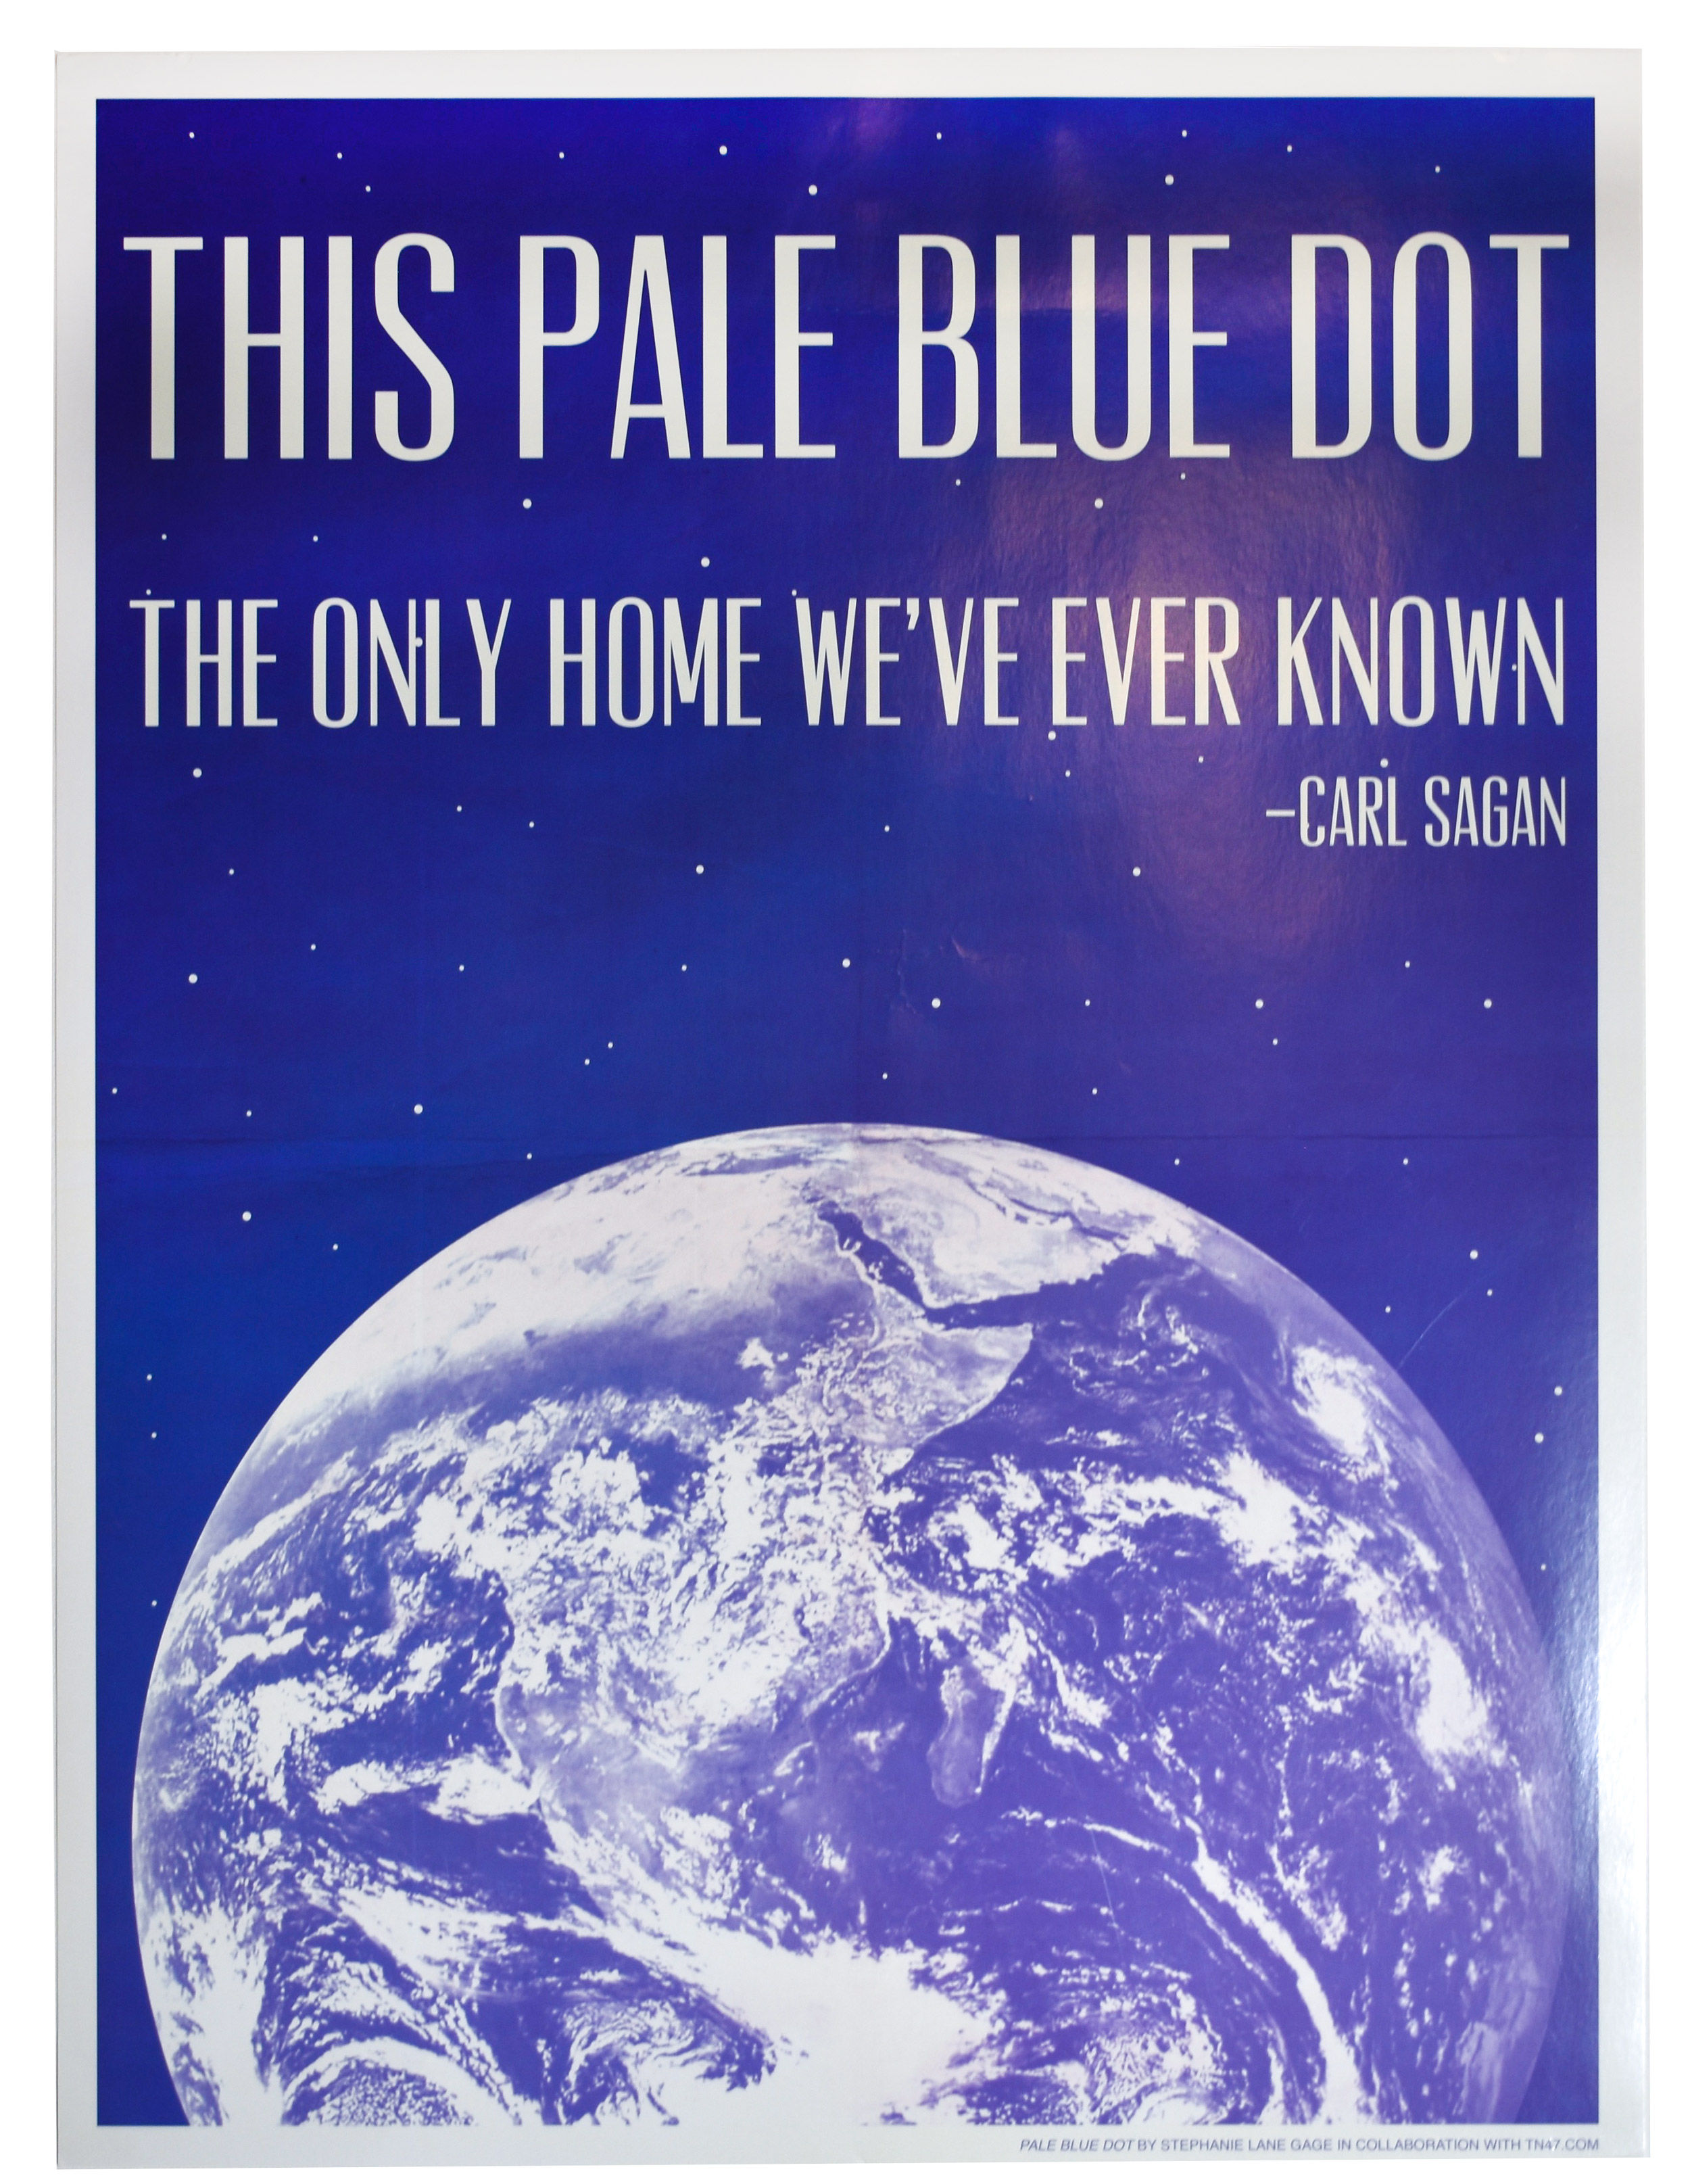 This pale blue dot, the only home we've ever known